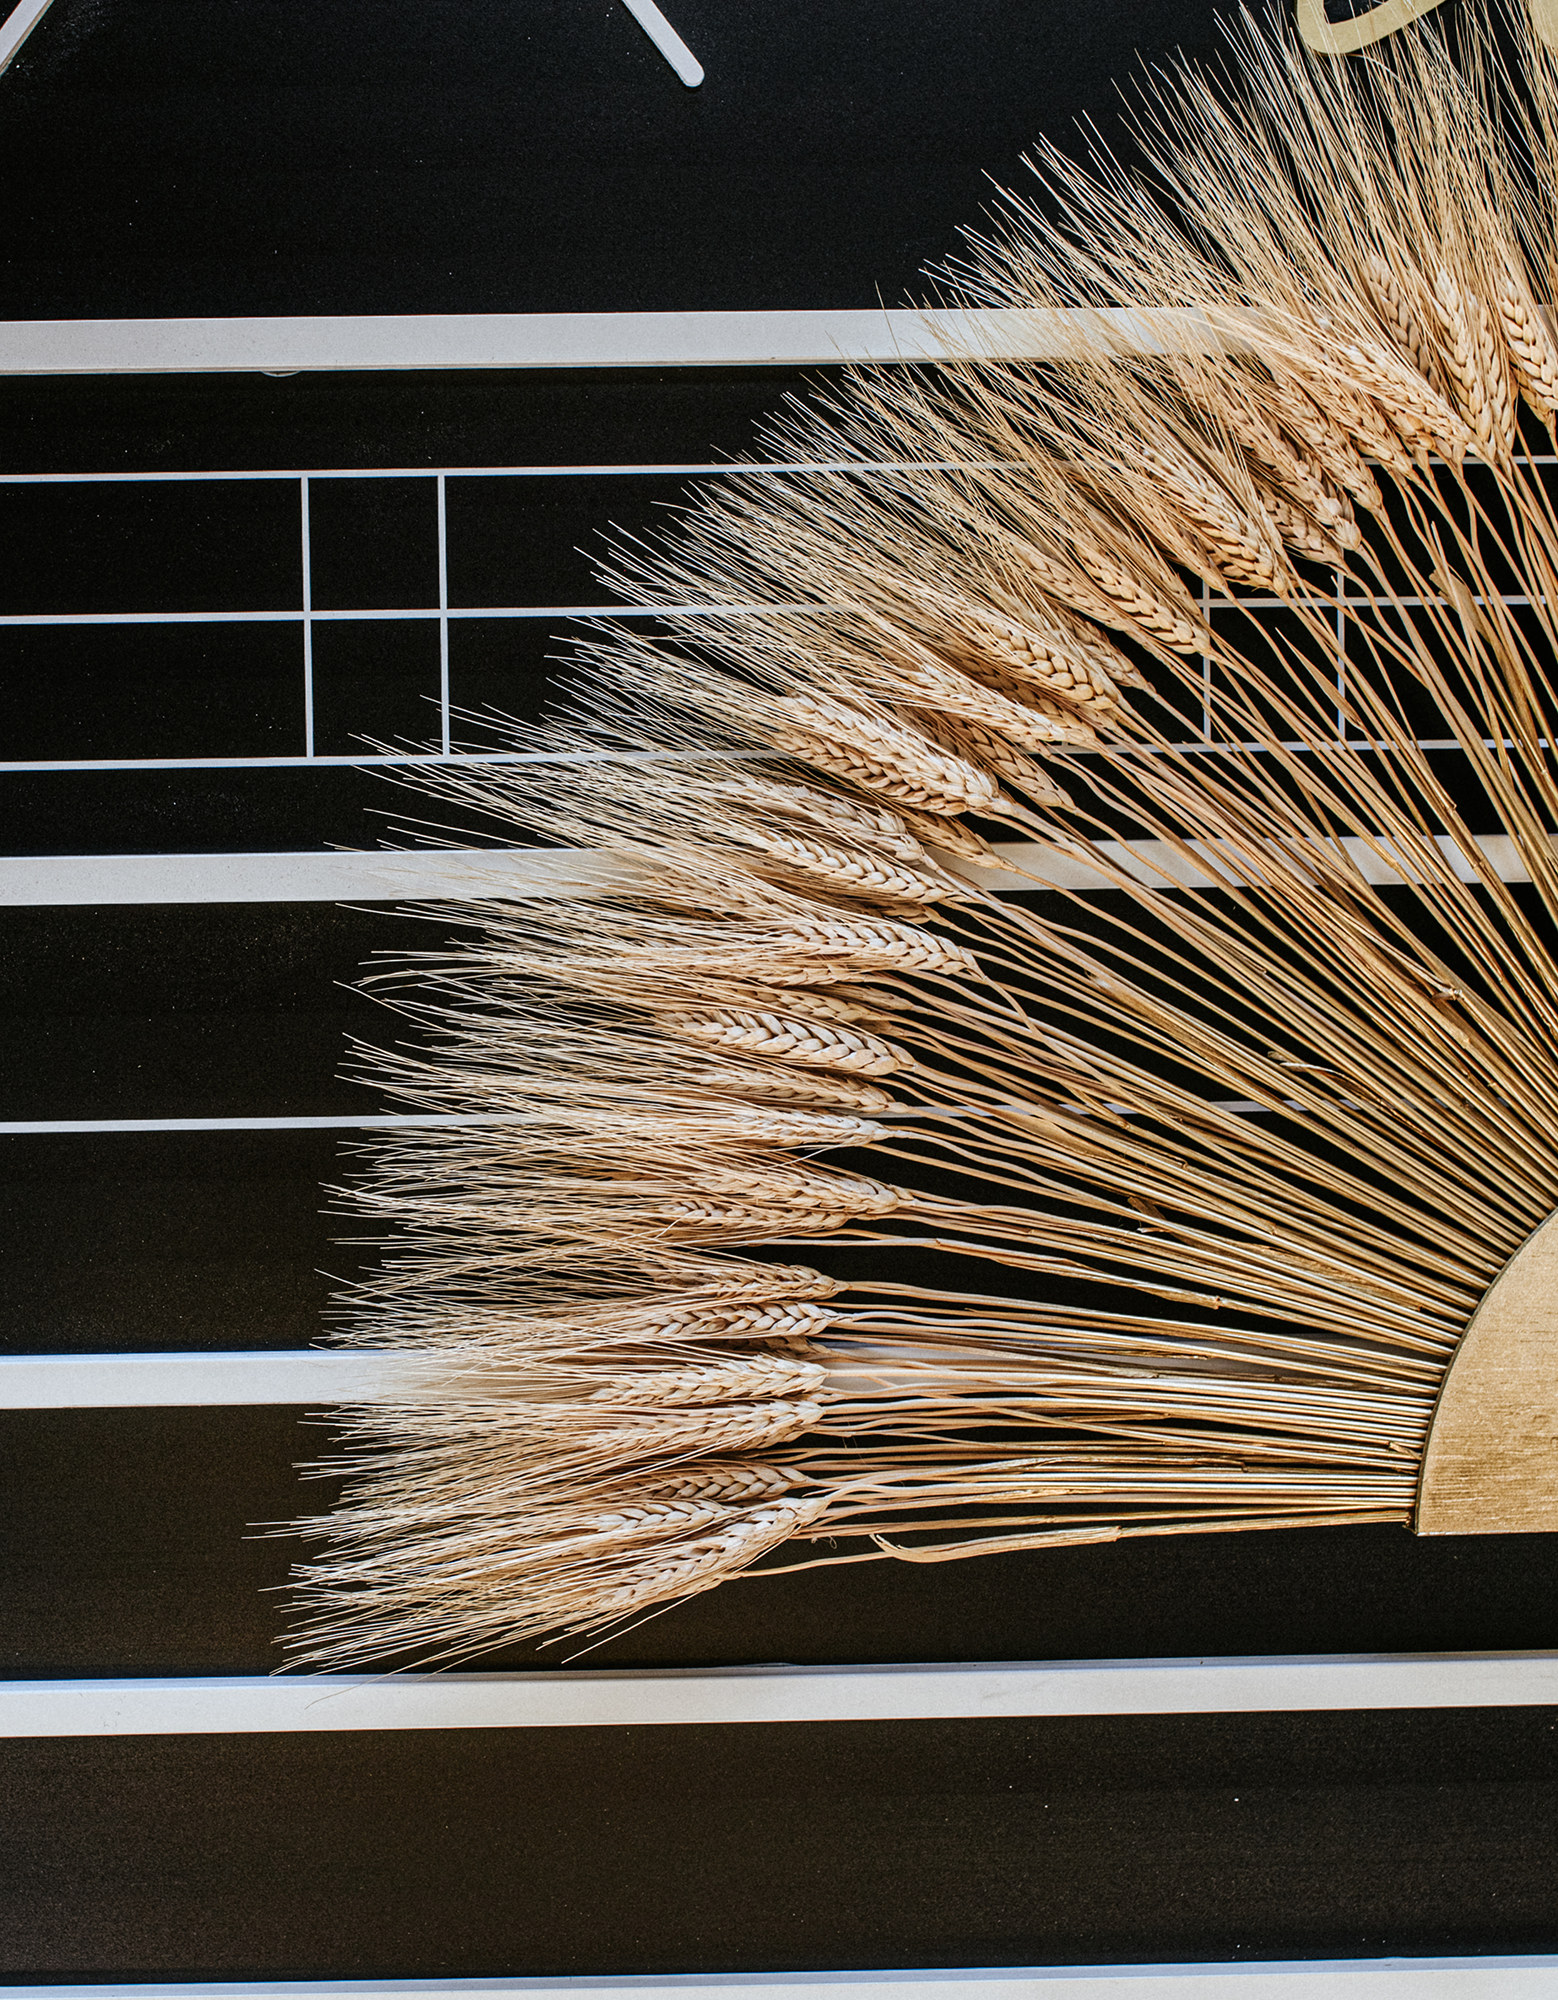 Wheat fan decoration for black and white wedding